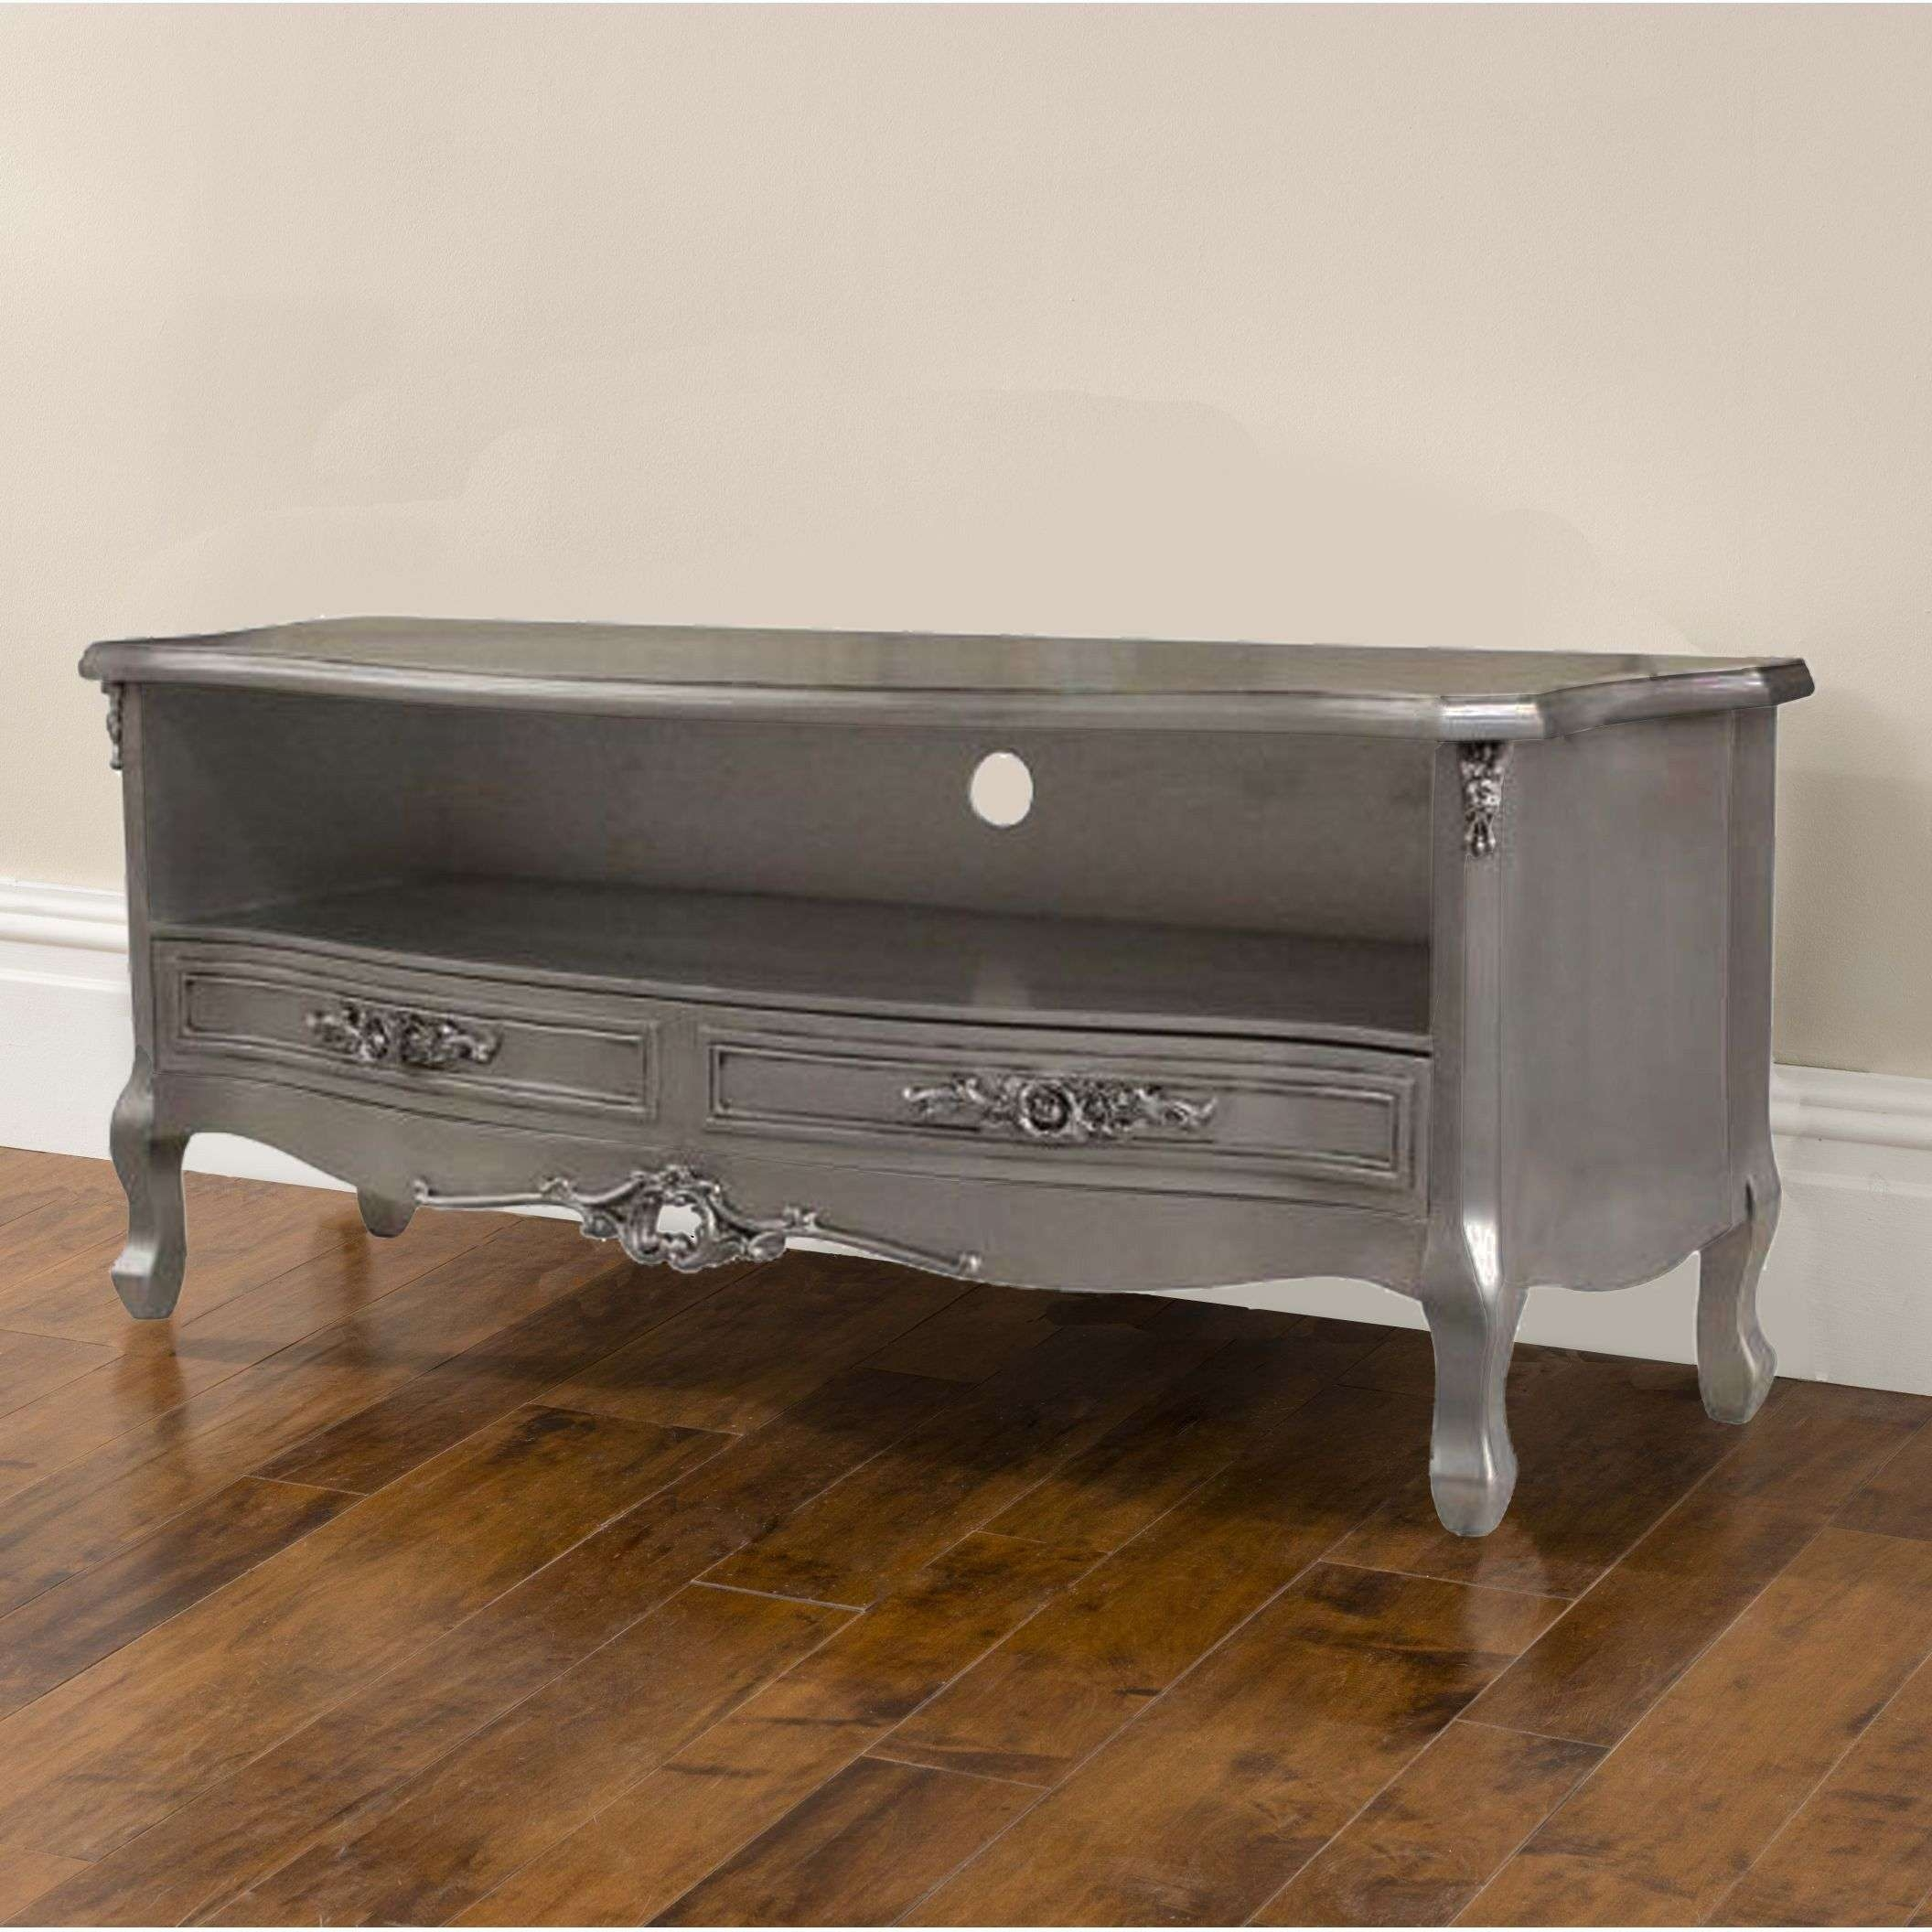 Stunning New Collection Of French Furniture | Homes Direct 365 With Regard To Antique Style Tv Stands (View 2 of 15)